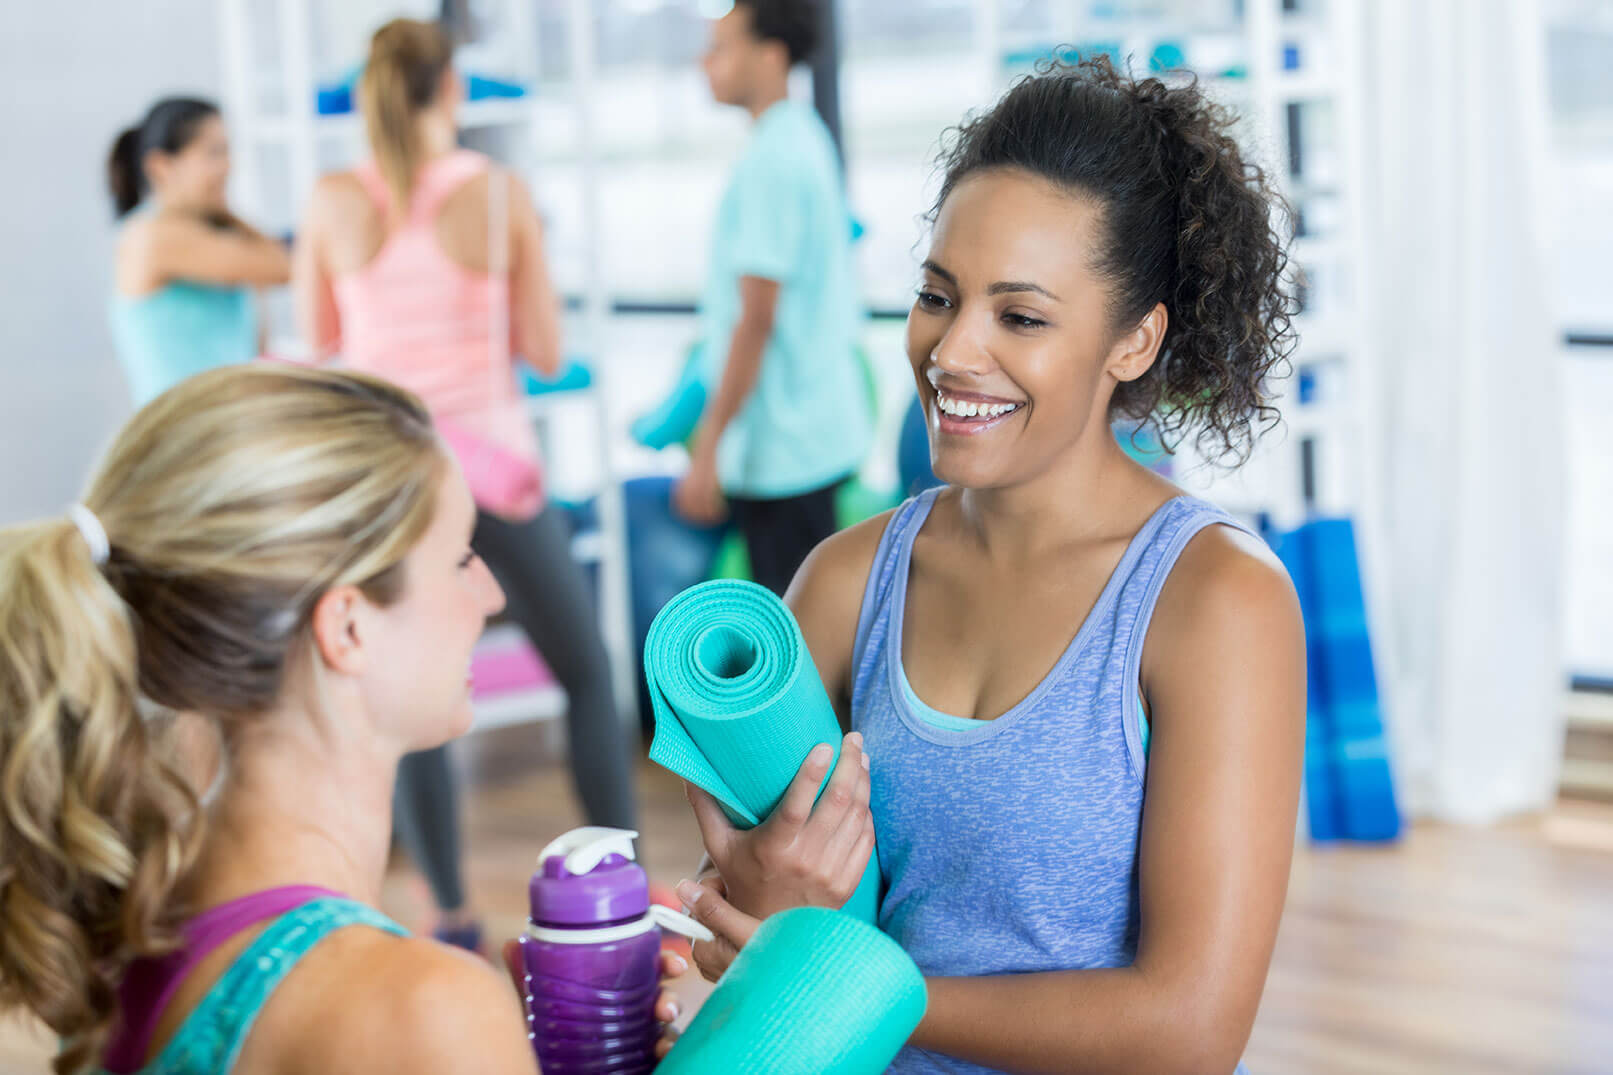 woman with yoga mat talking to friend